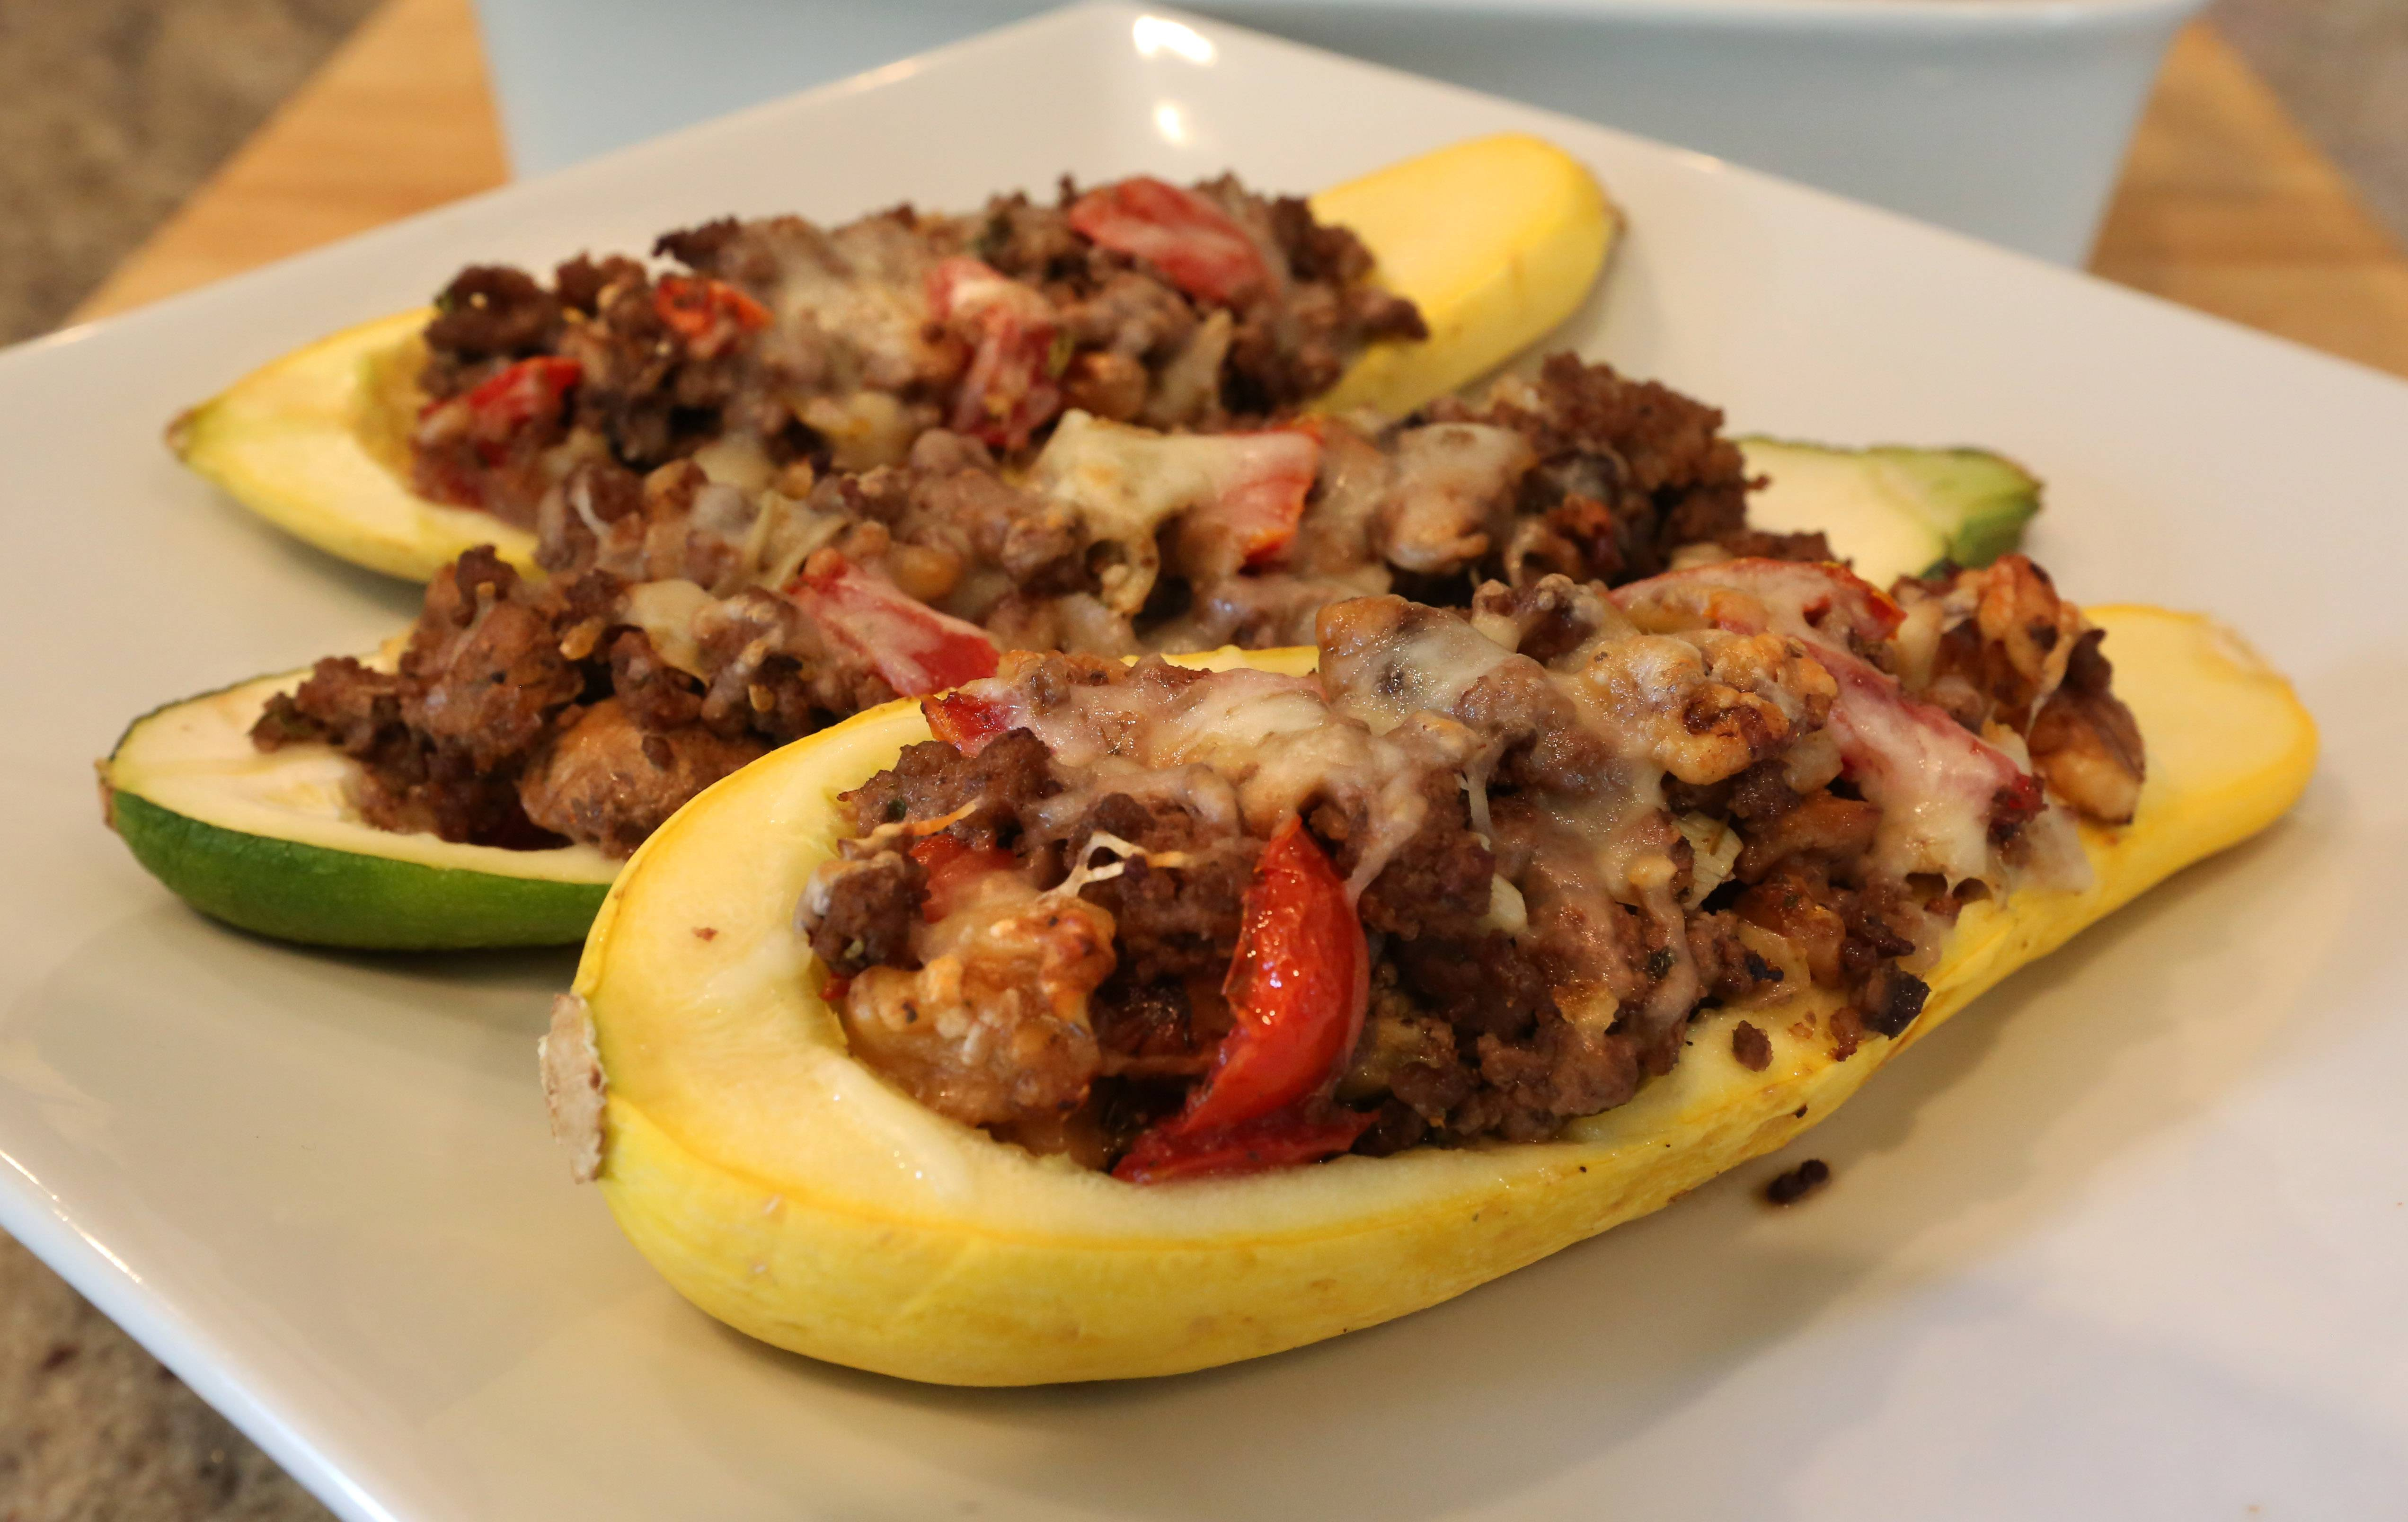 Bison is the meat of choice in Kate Kent's stuffed squash.